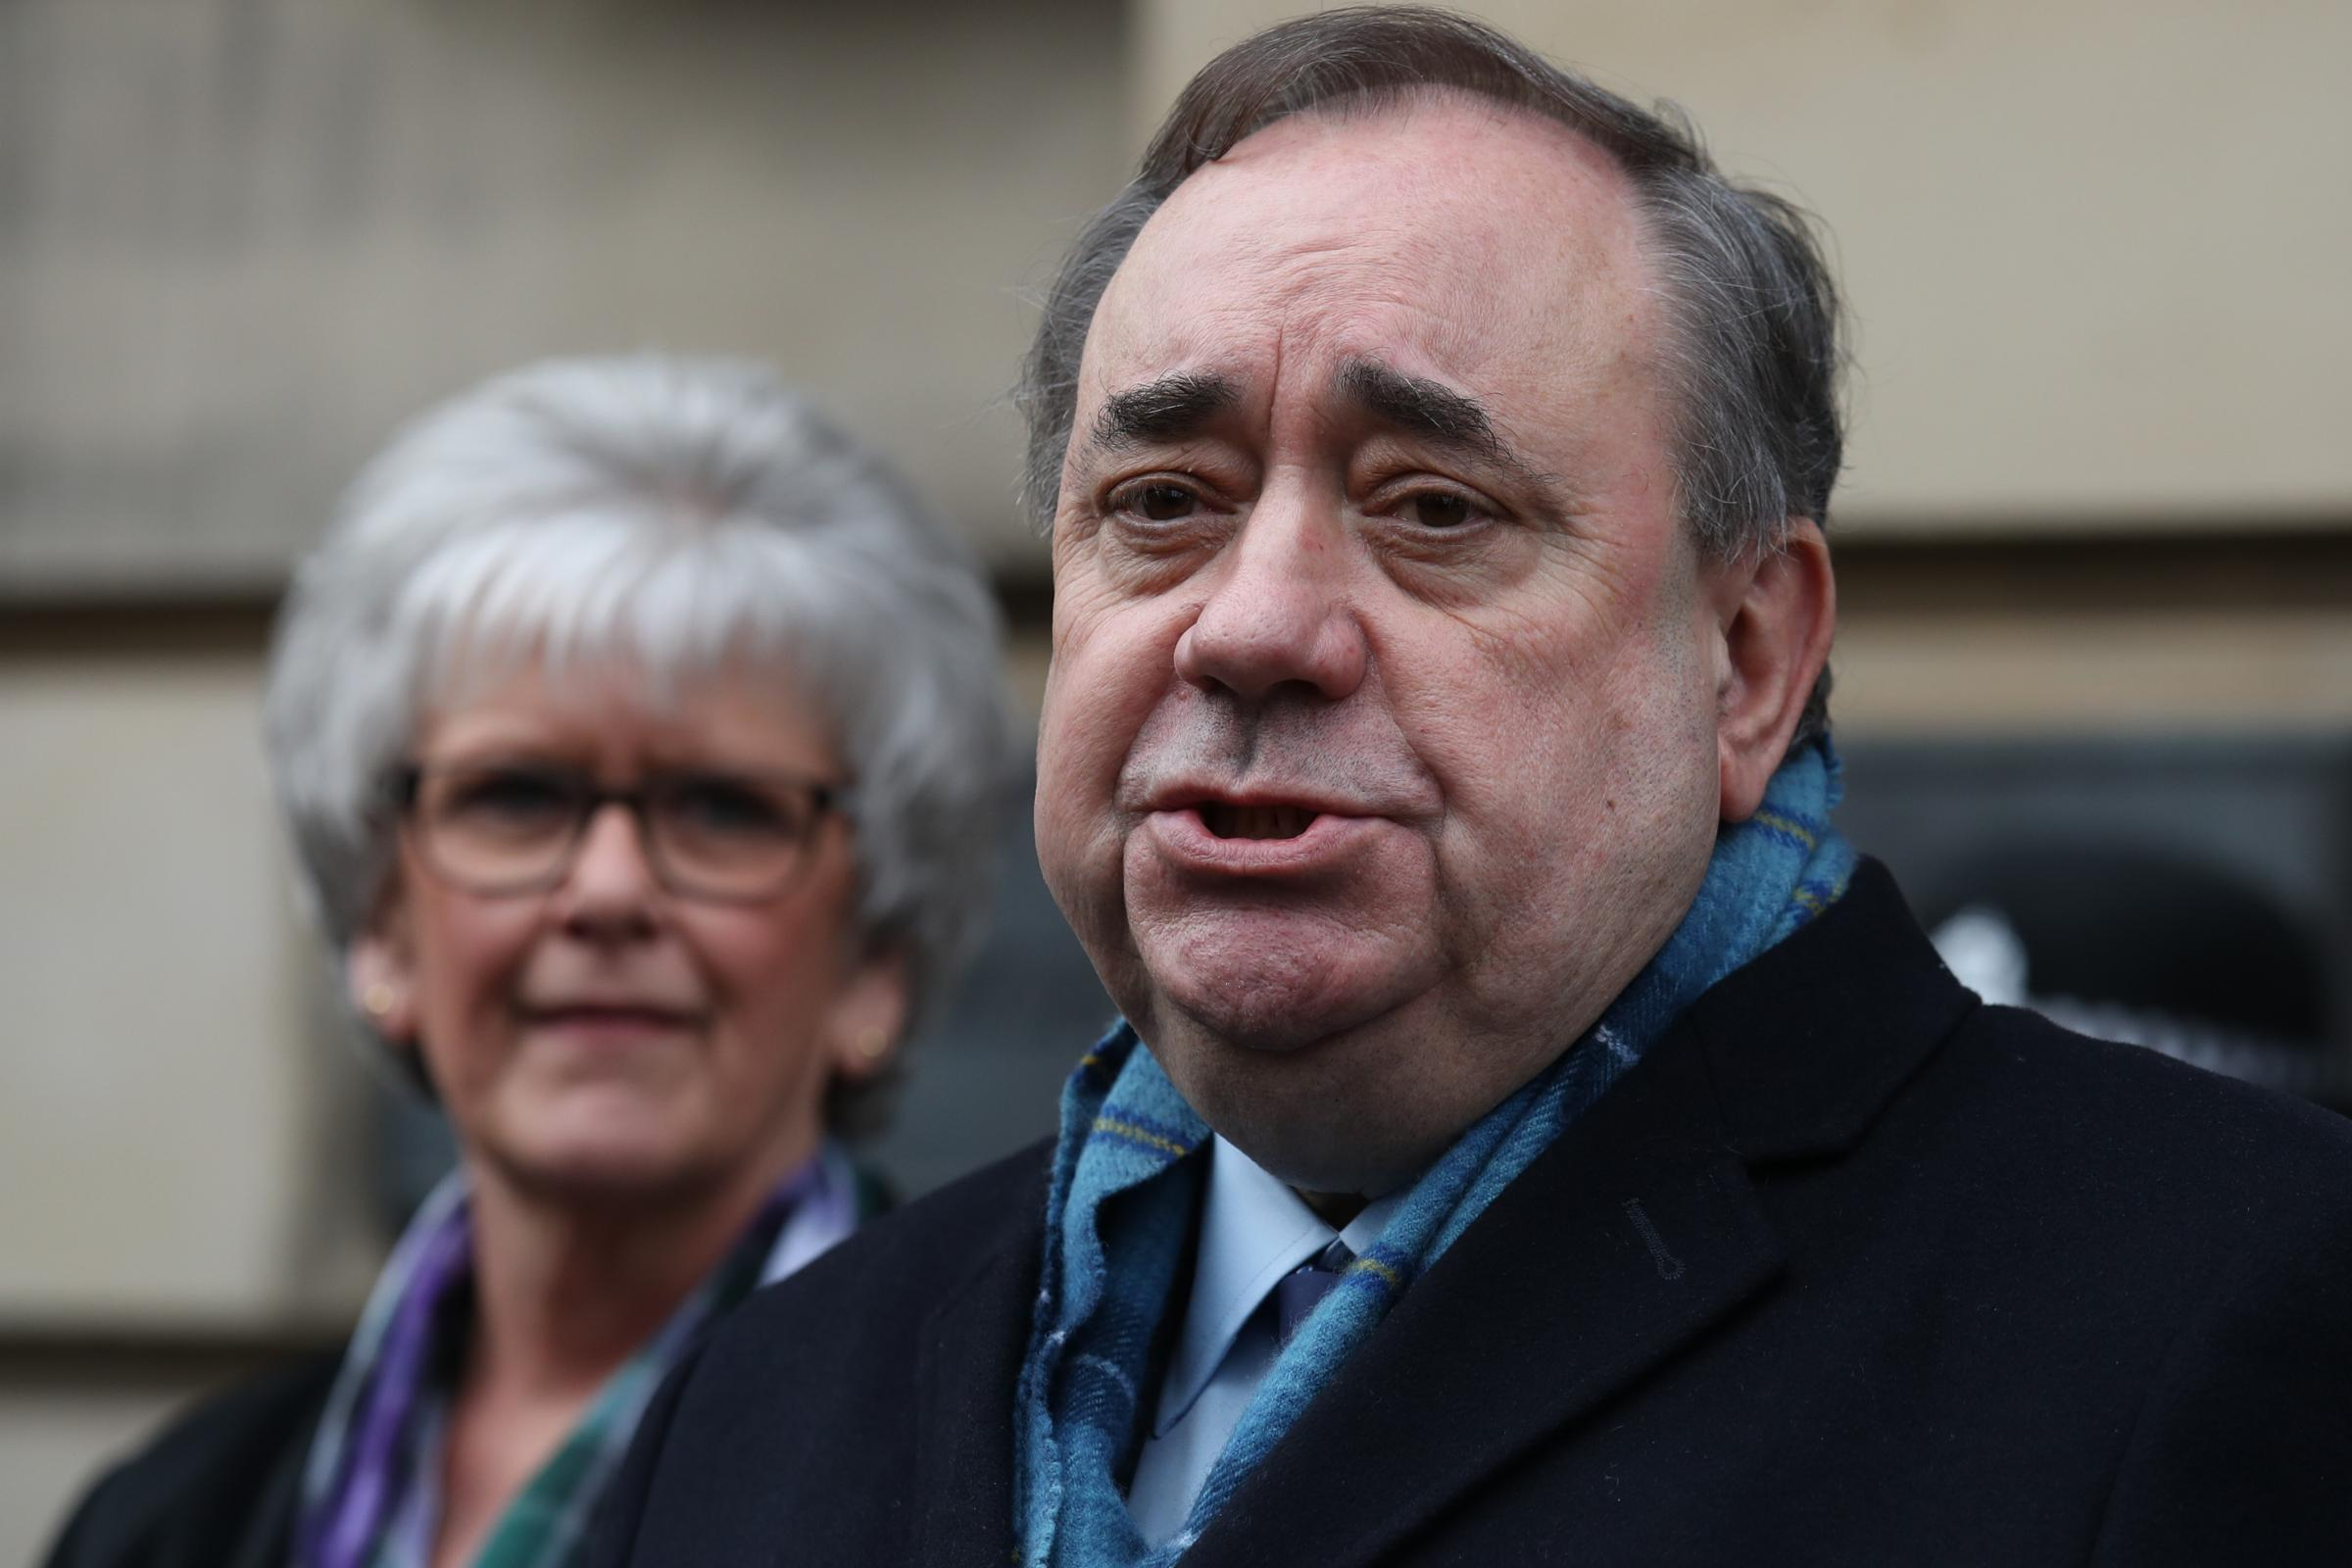 Alex Salmond's lawyer refers himself to complaints body over video